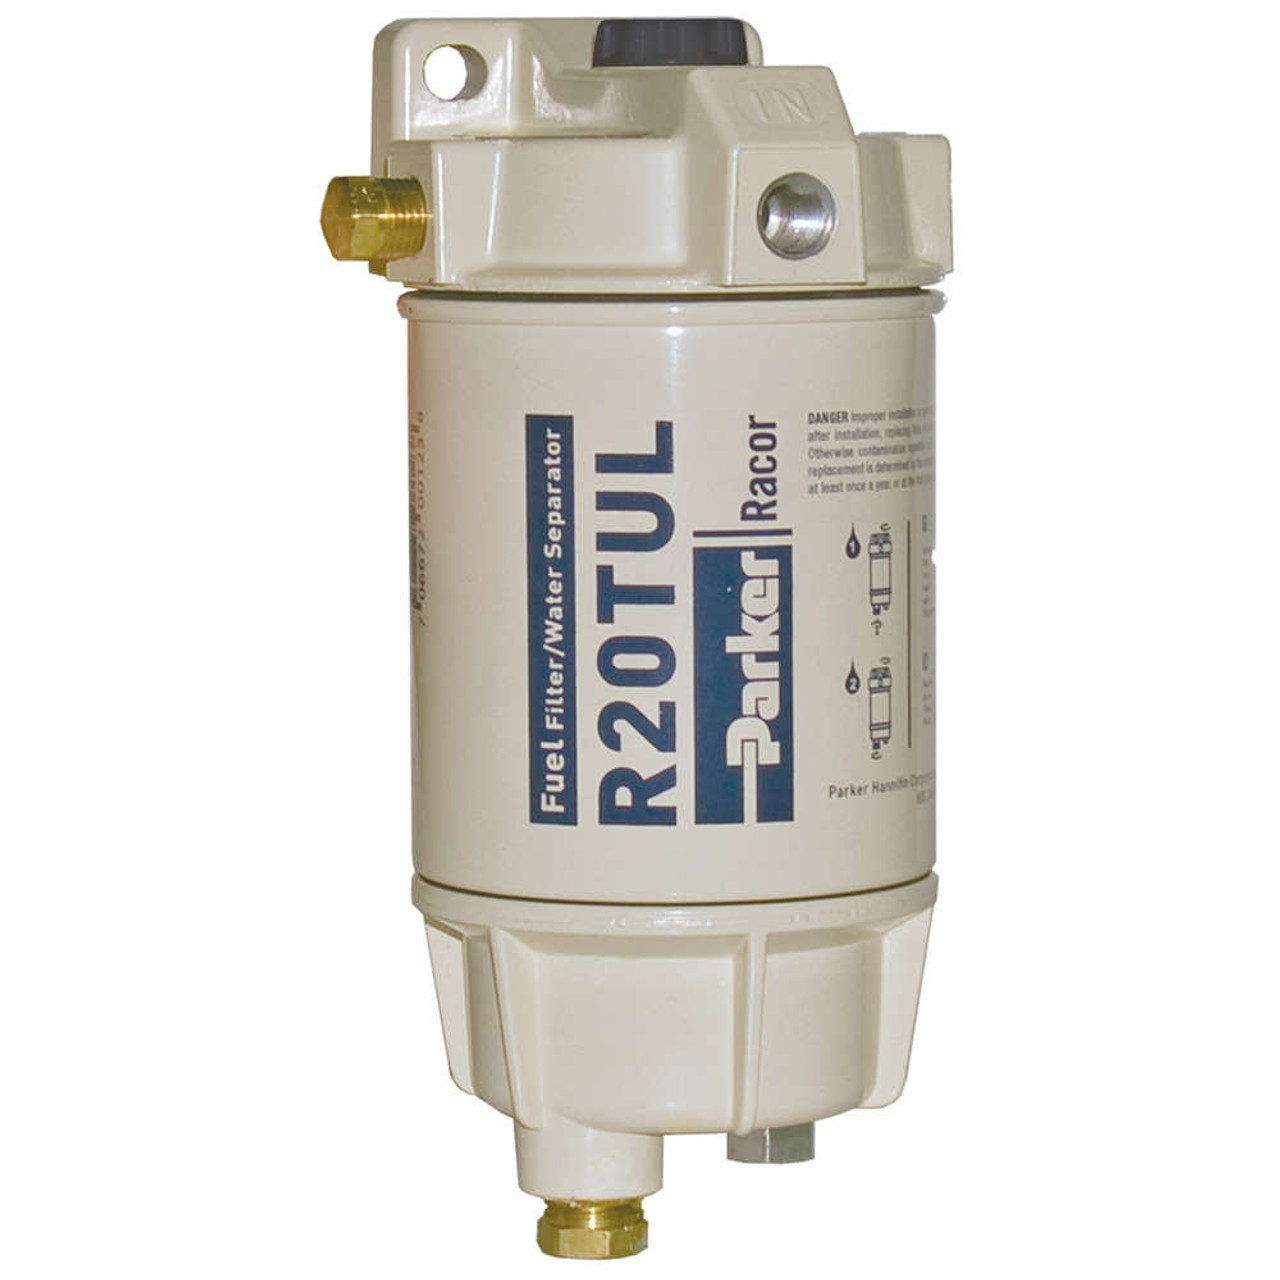 small resolution of racor 1 4 in 30 gph aquabloc marine spin on type diesel fuel filterracor 1 4 in 30 gph aquabloc marine spin on type diesel fuel filter water separator